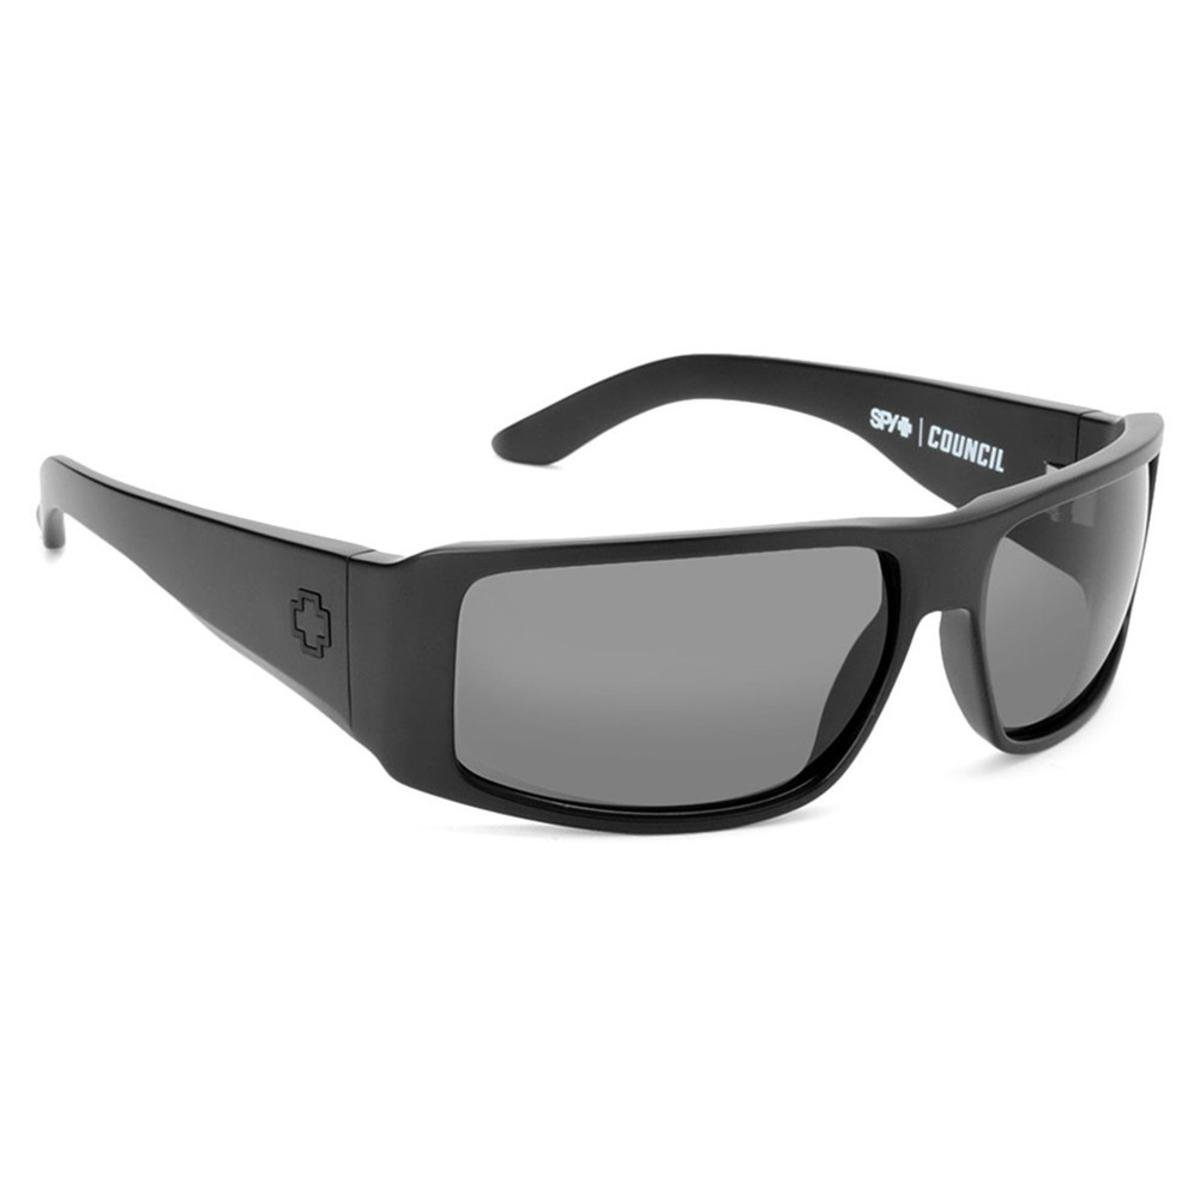 59fe92a928 Amazon.com  Spy Optic Council Sunglasses